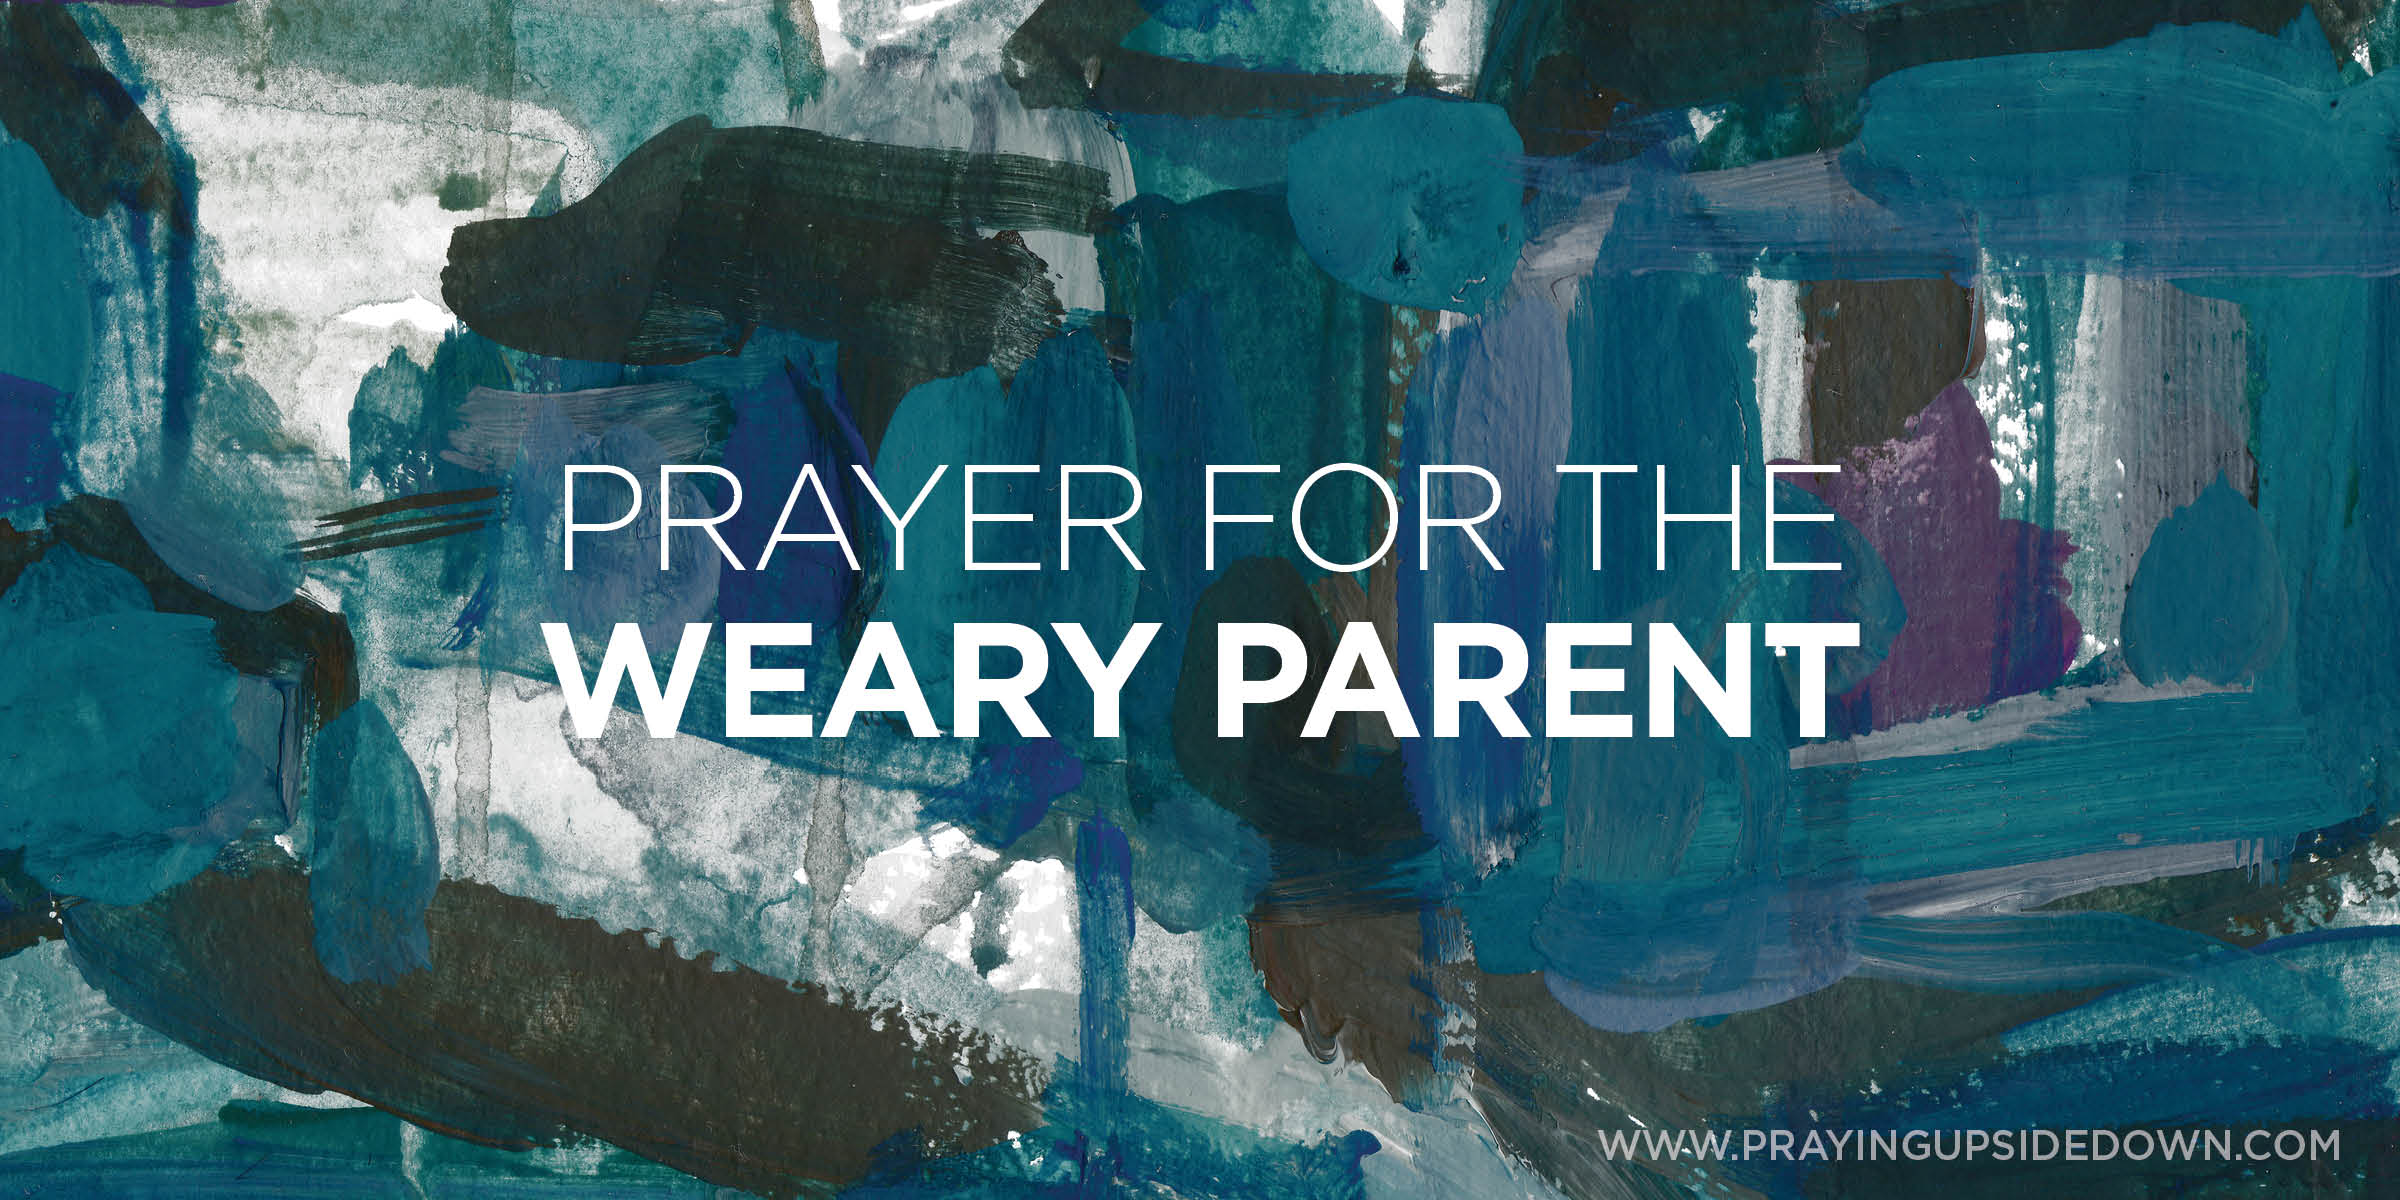 GRAPHIC prayer for the weary parent